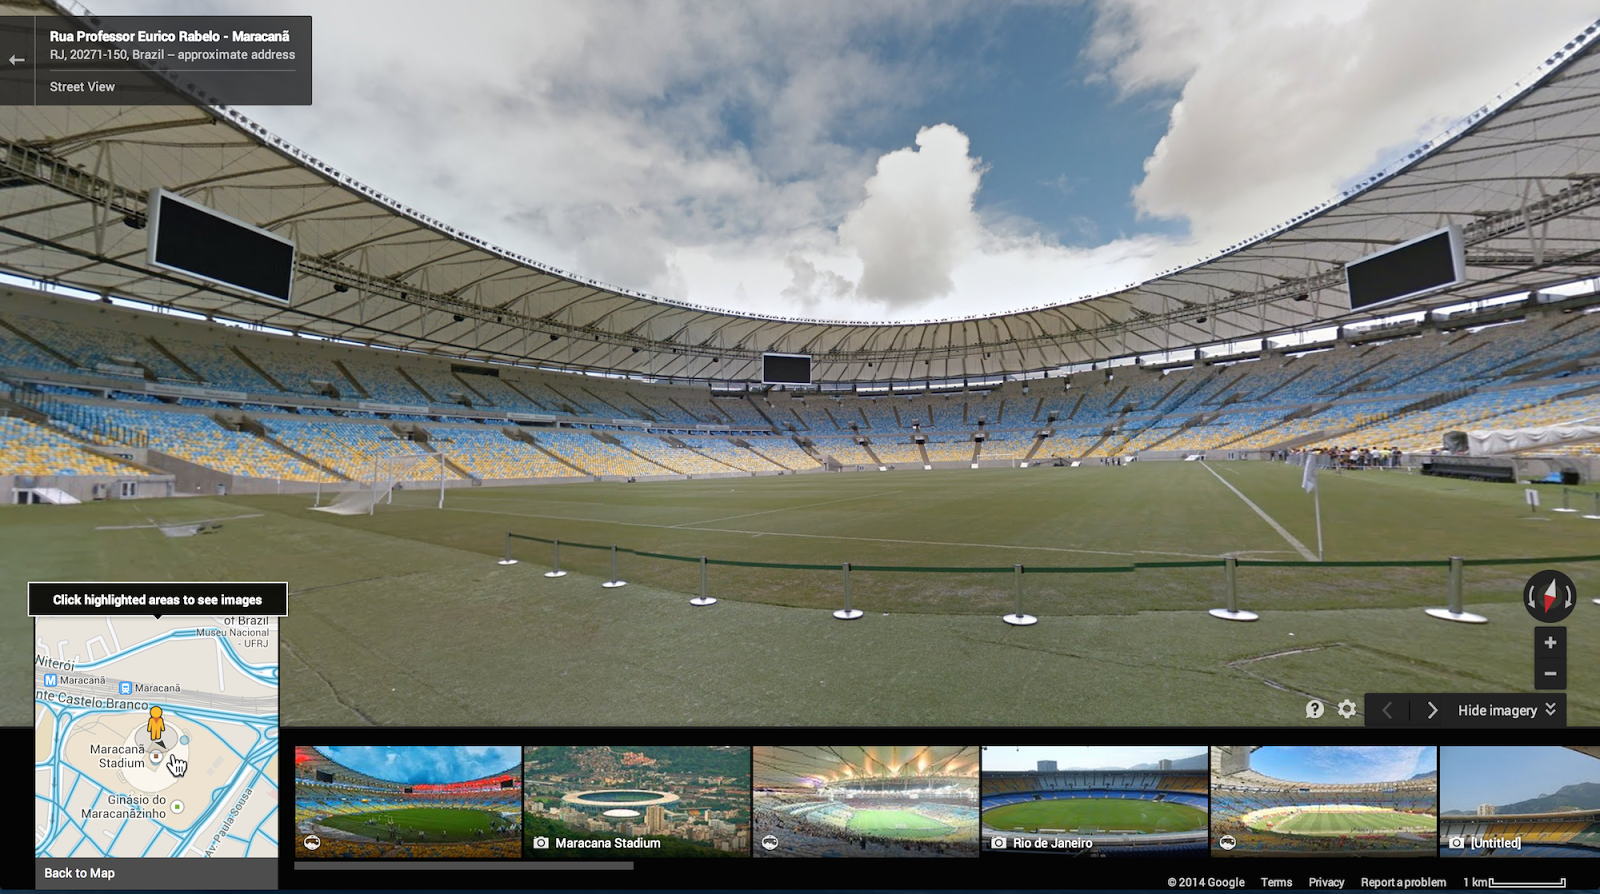 Google Adds World Cup Stadiums to Street View